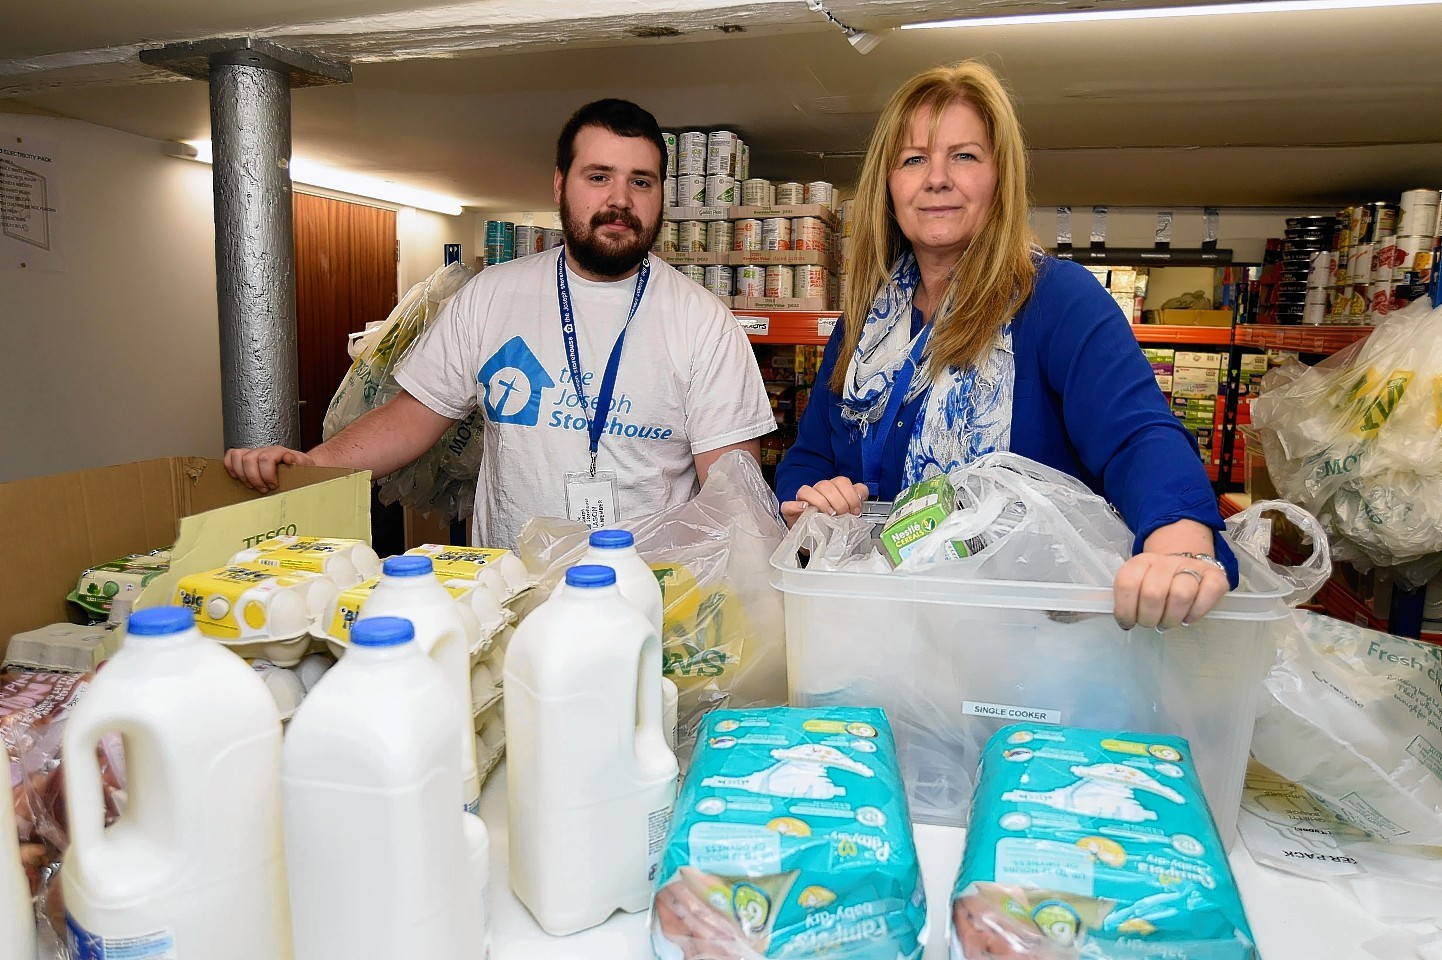 Plans were put in place for a food bank for those affected